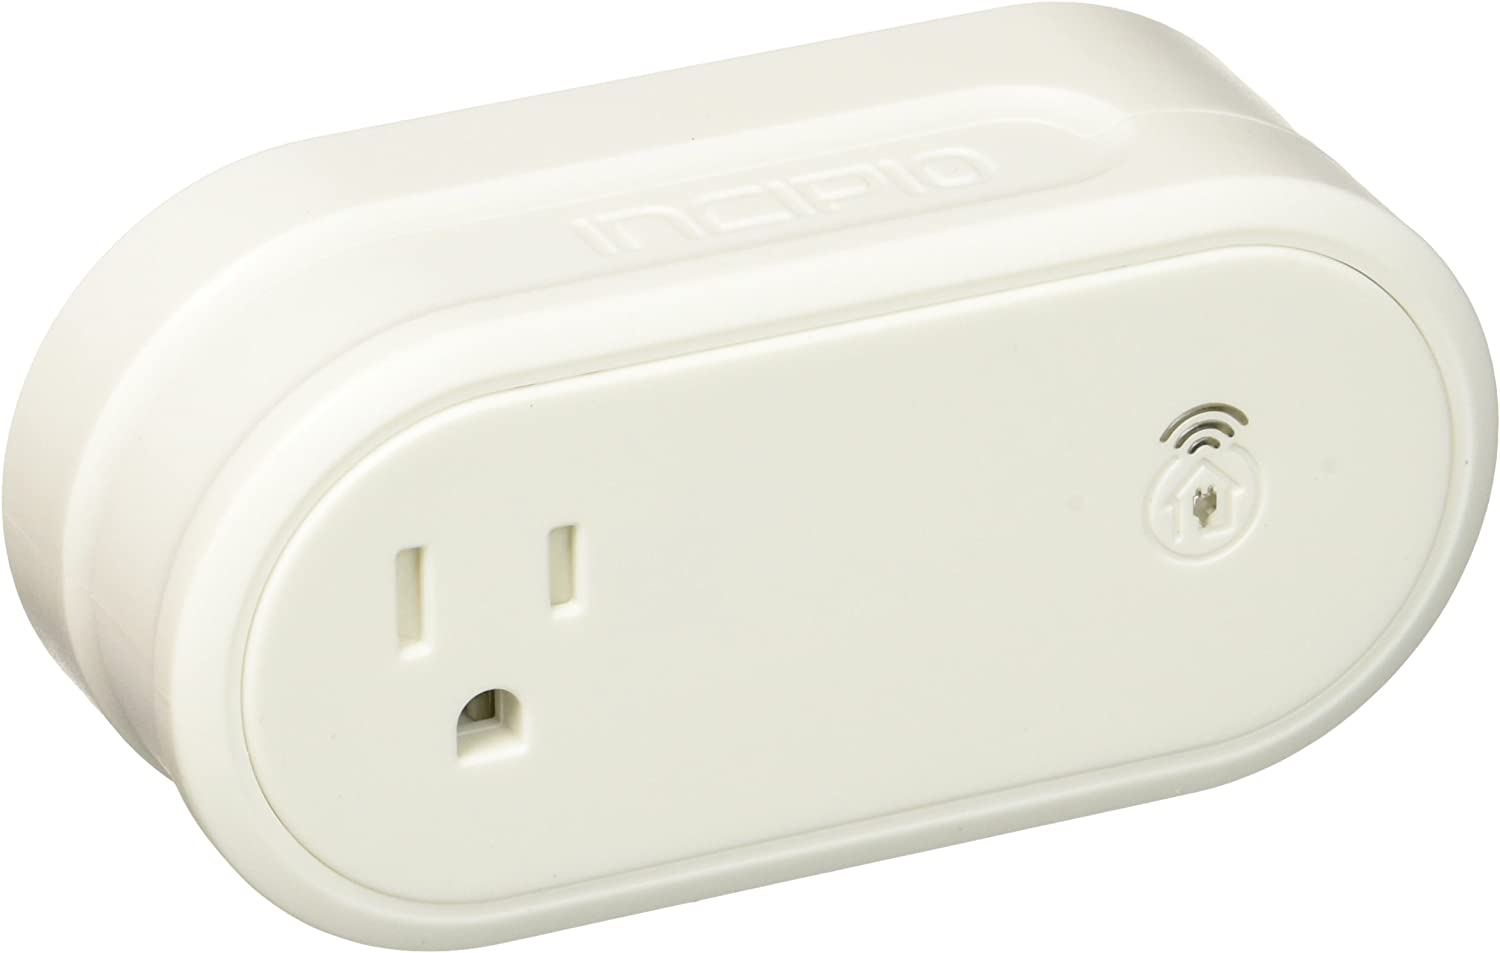 Incipio CommandKit Wireless Smart Outlet Adapter, WiFi Enabled Smart Home Automation System Adapter